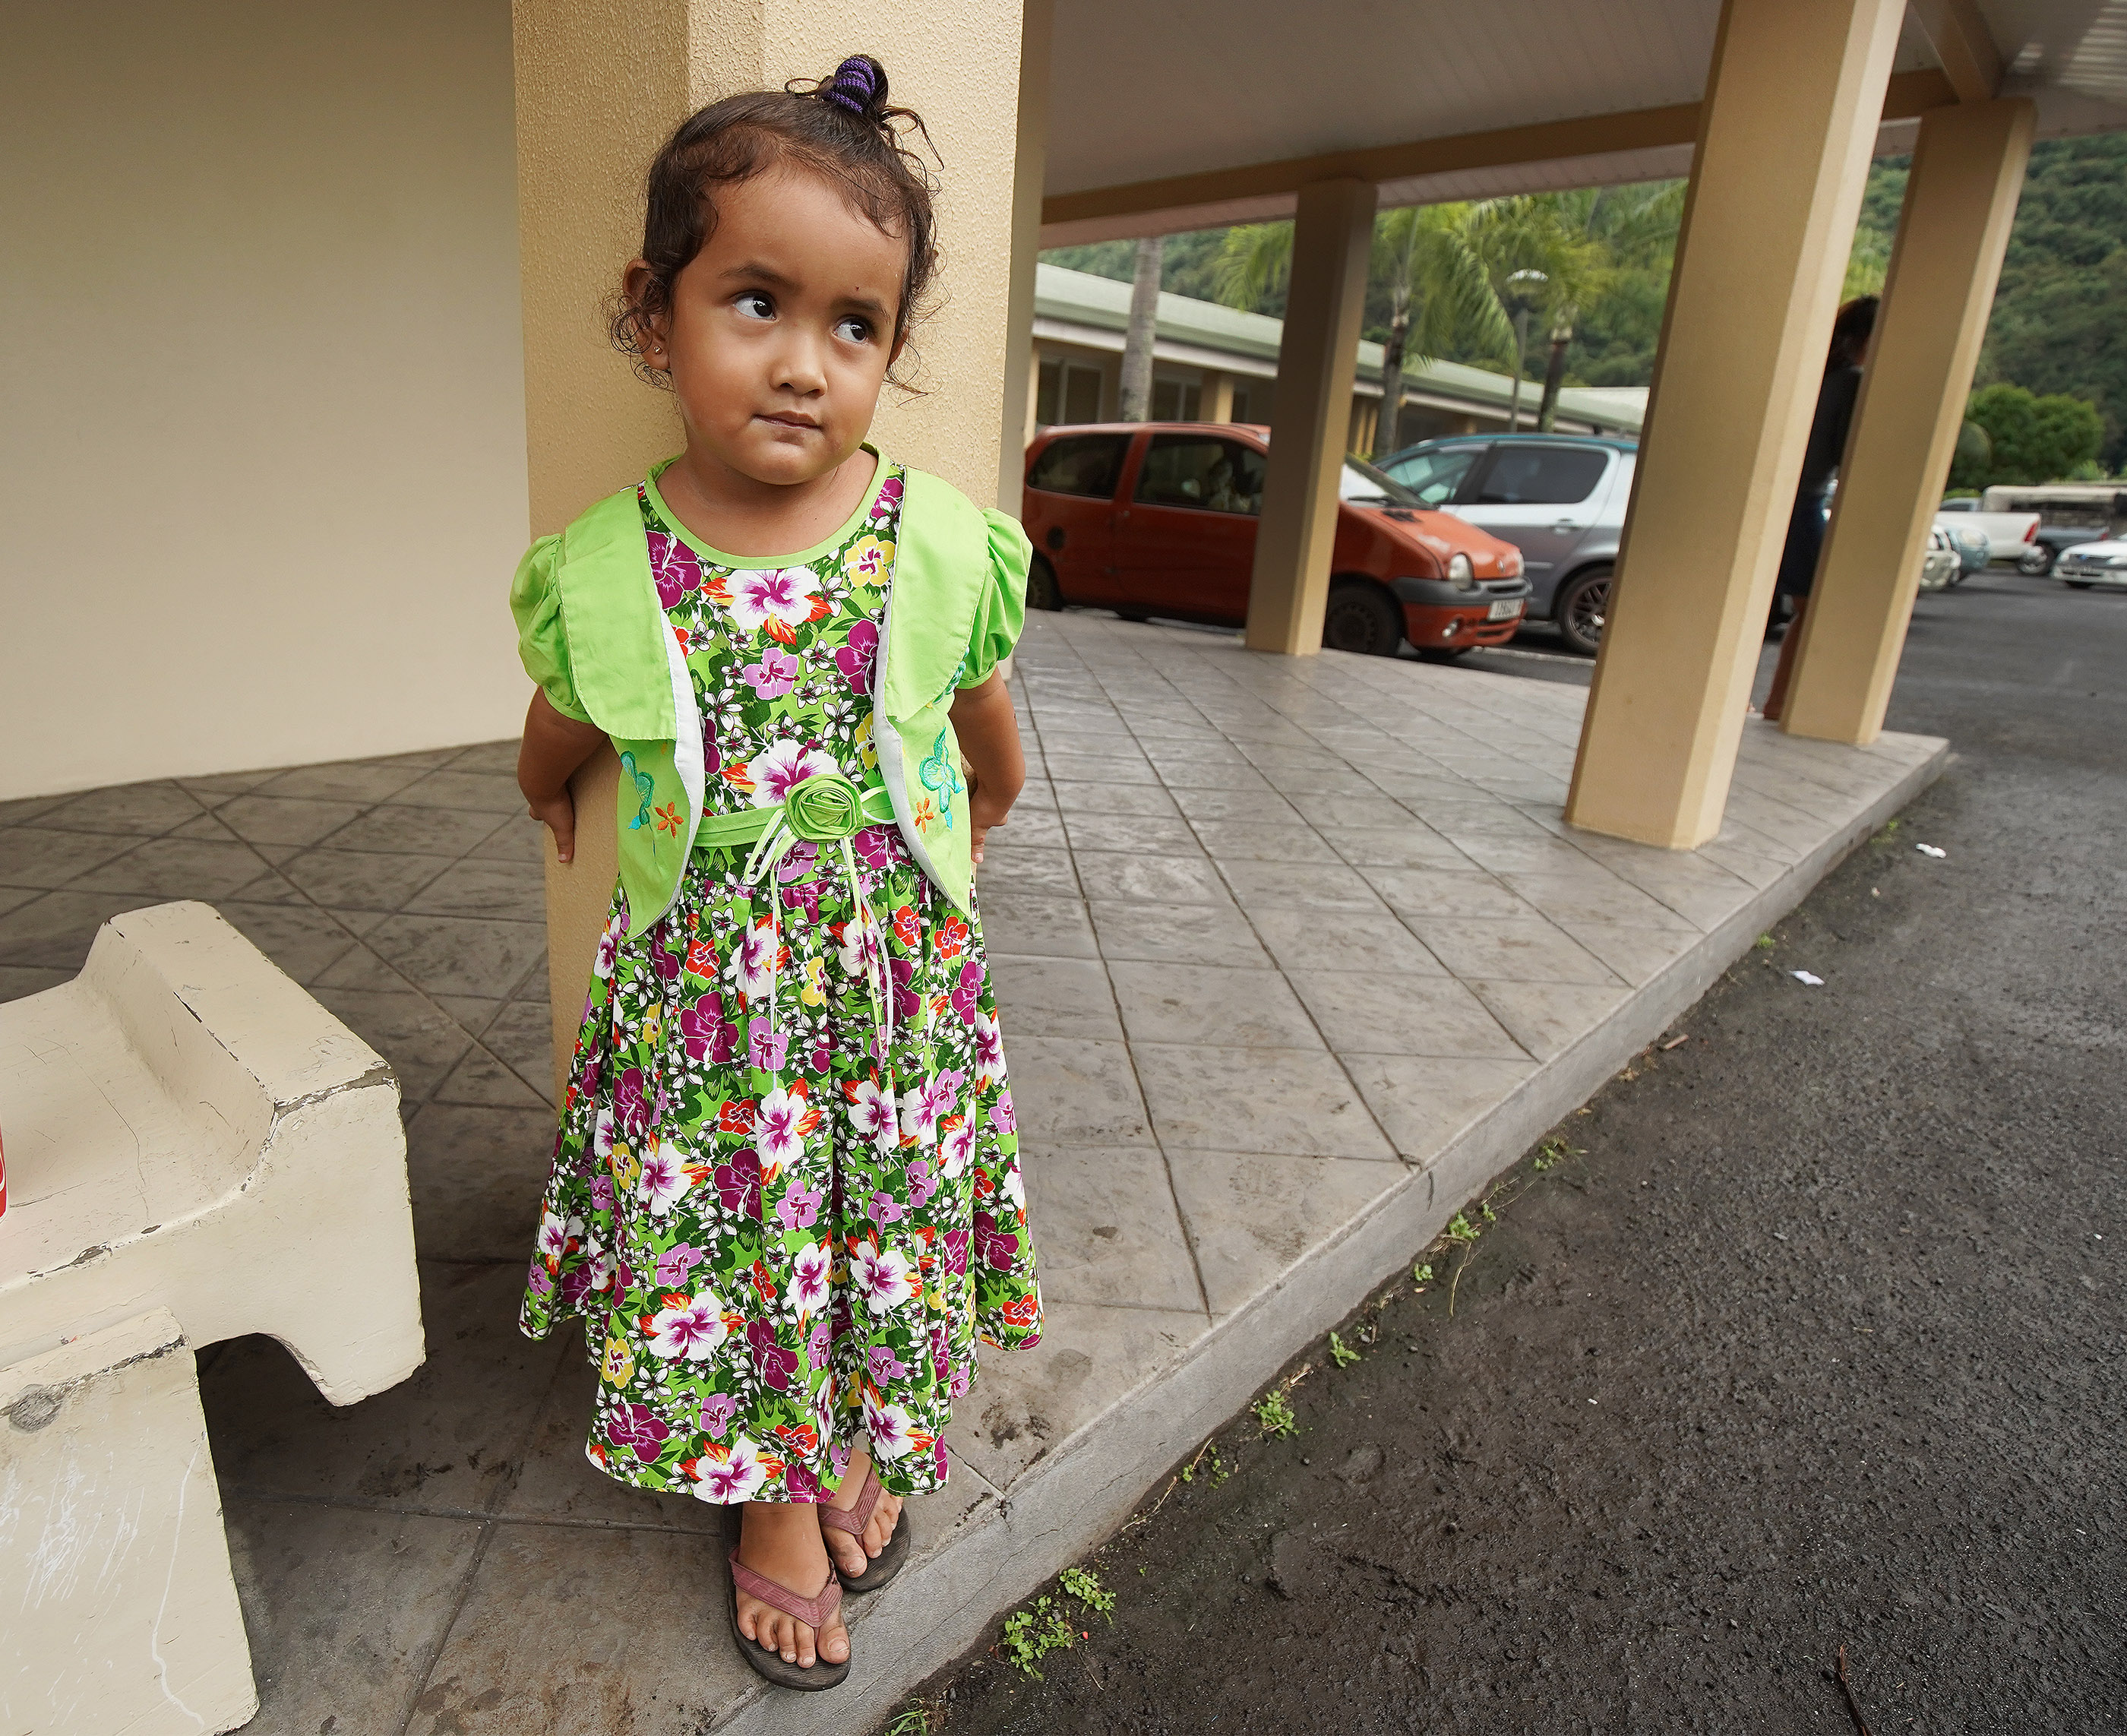 Picard Vaiora waits outside after meetings at The Church of Jesus Christ of Latter-day Saints in Papeete, Tahiti, on May 26, 2019.